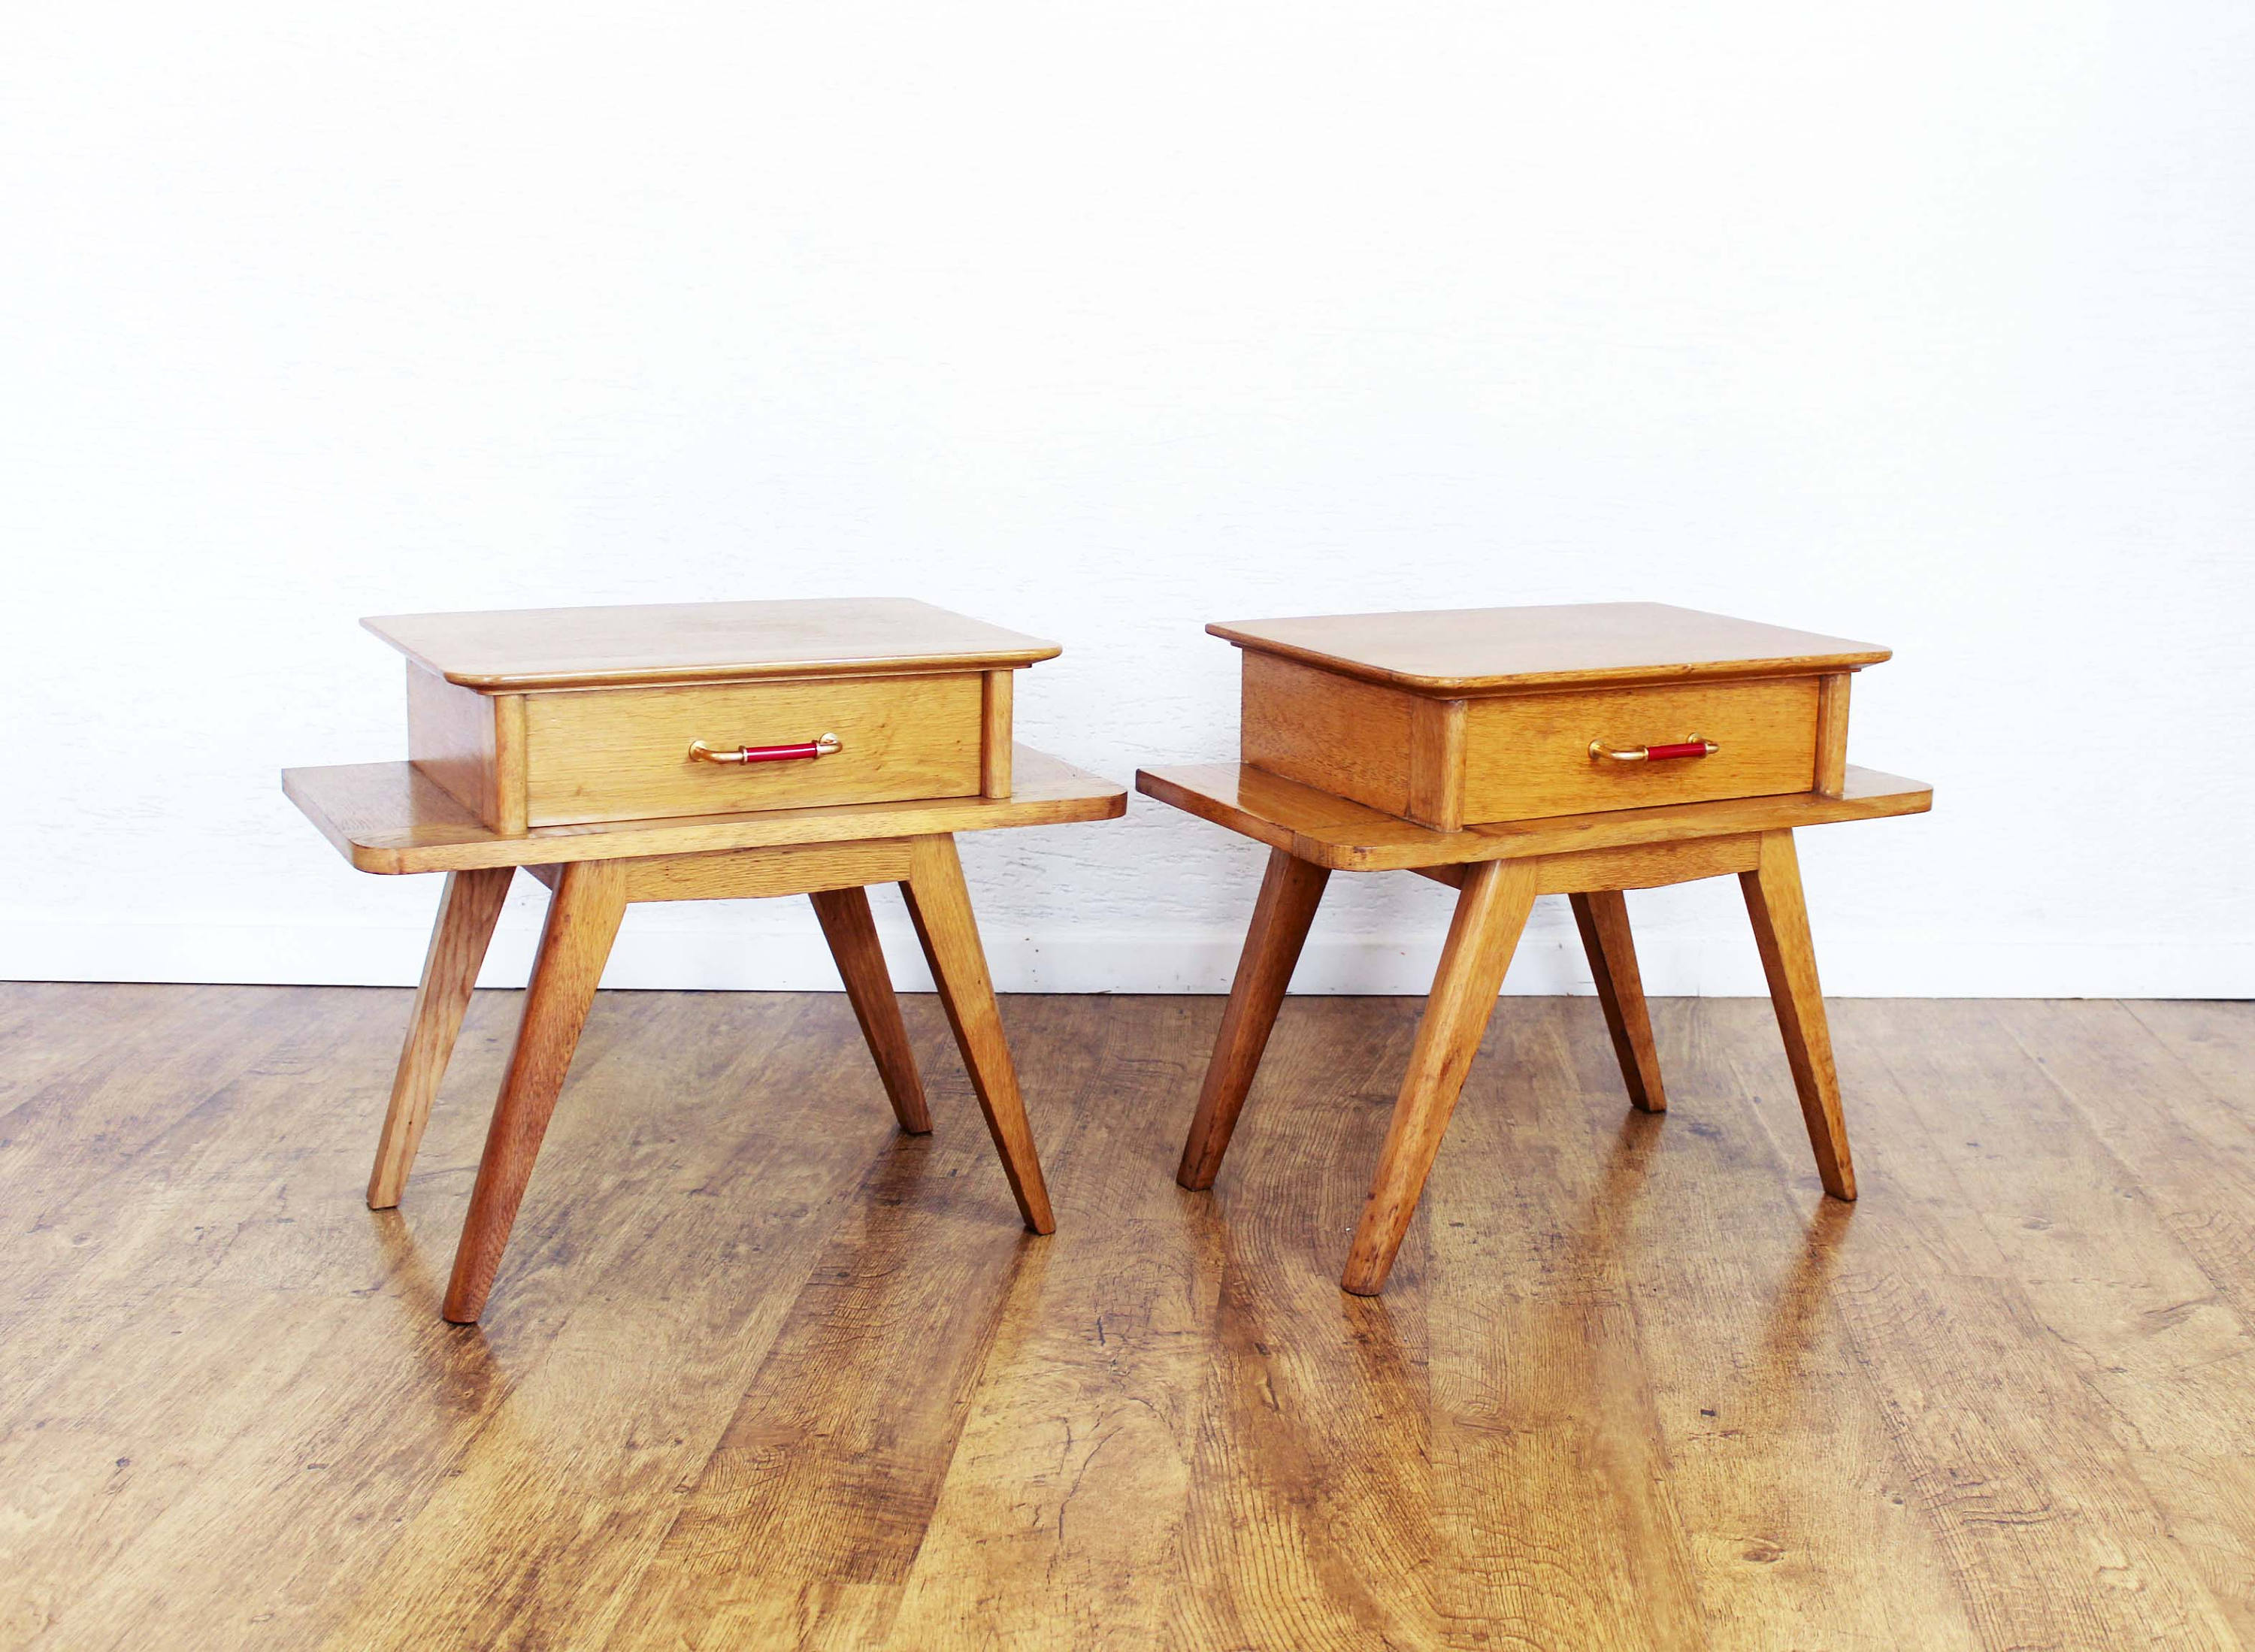 Paire de chevets ou tables d'appoints style scandinave